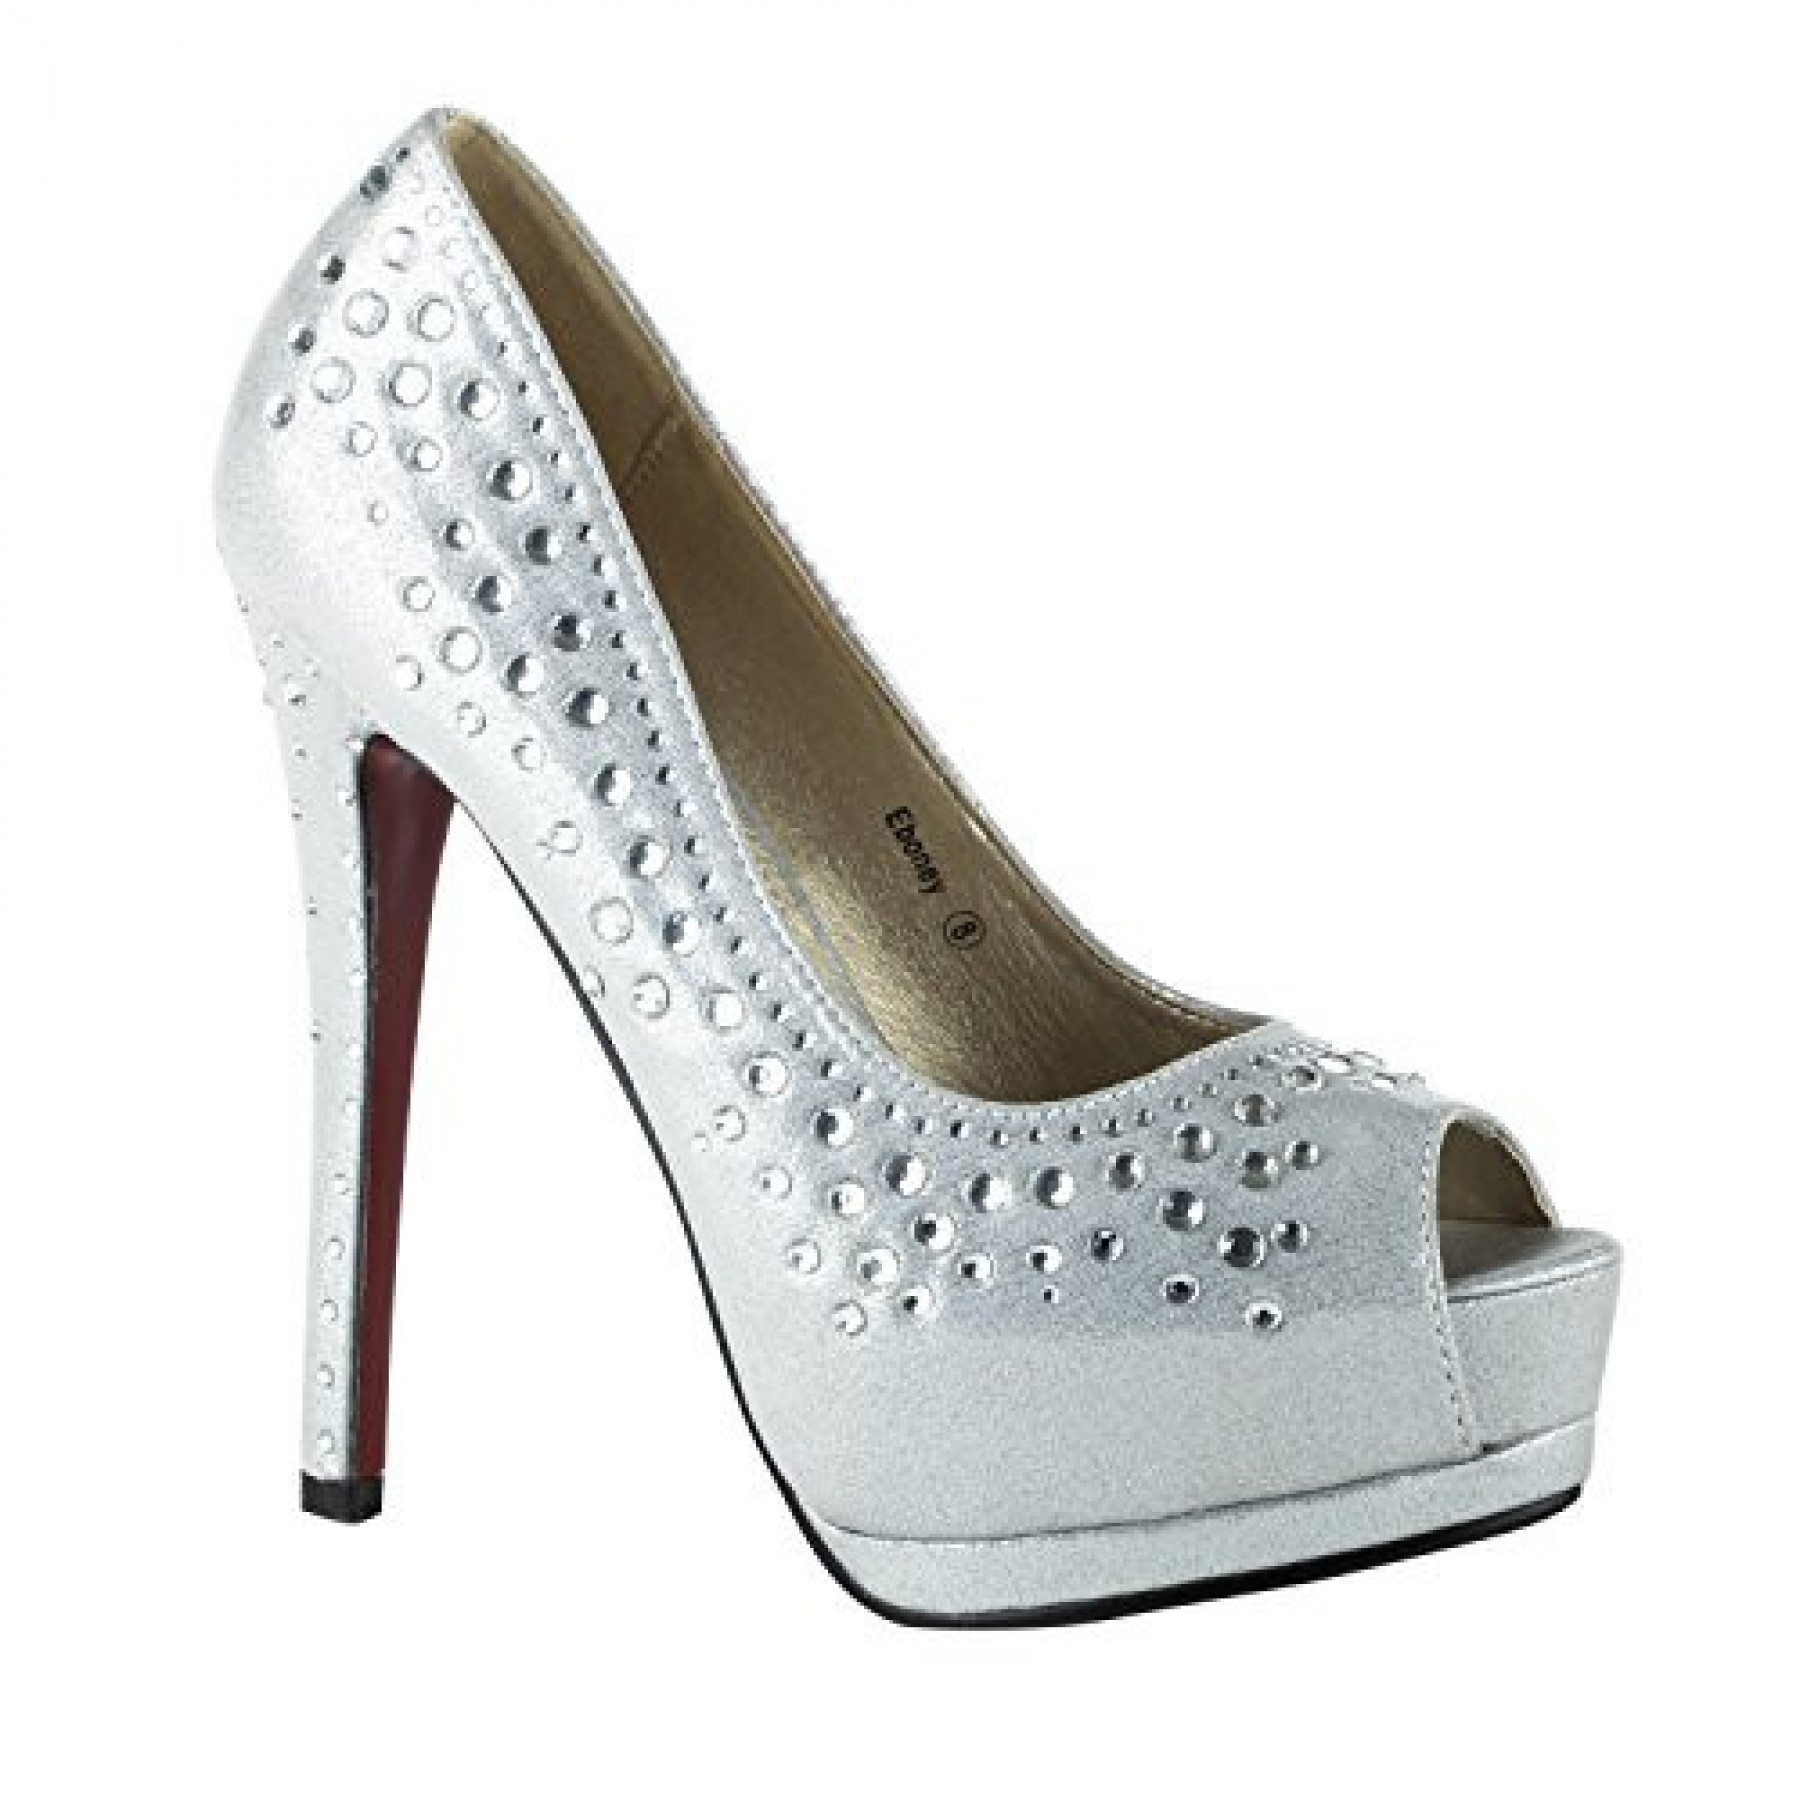 Women's Silver Eboney Manmade 5-inch Platfrom Peep-Toe Satin Pumps with Rhinestones